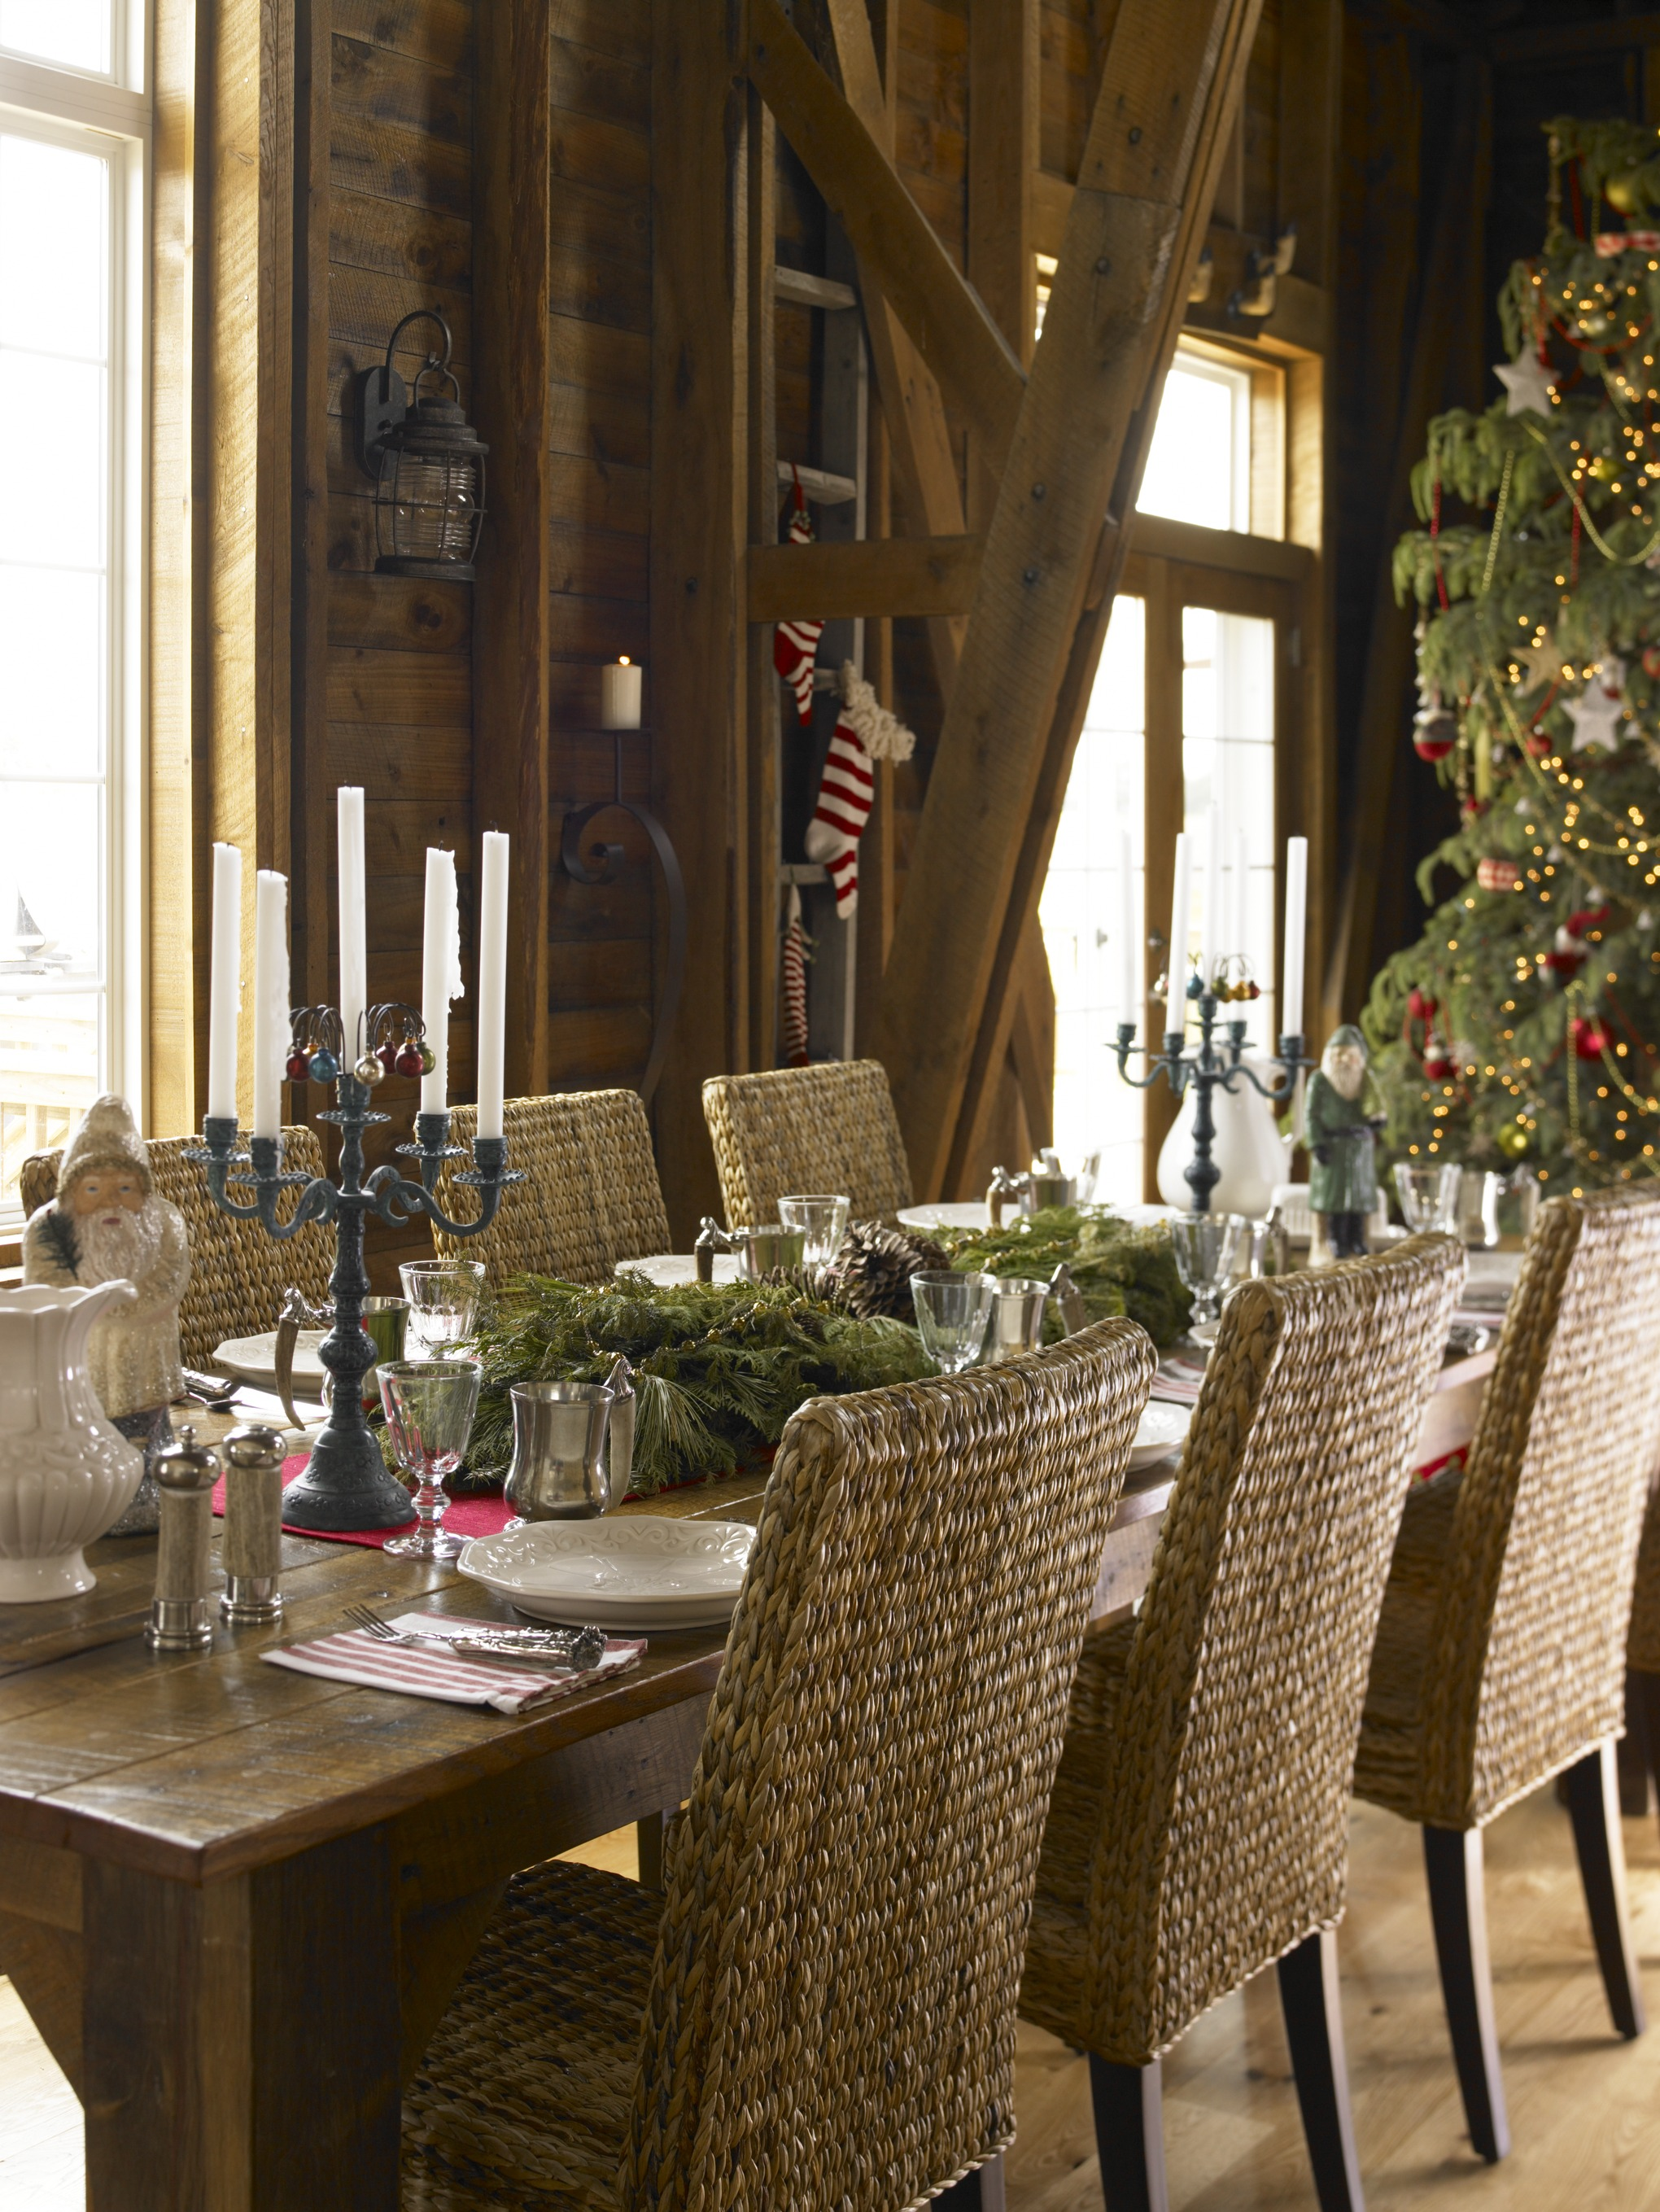 White rustic christmas decor - Natural Elements Converge At The Dining Table In This Wisconsin Home Fresh Greenery Runs Along The Center Of The Table Anchored On Either End By Blue